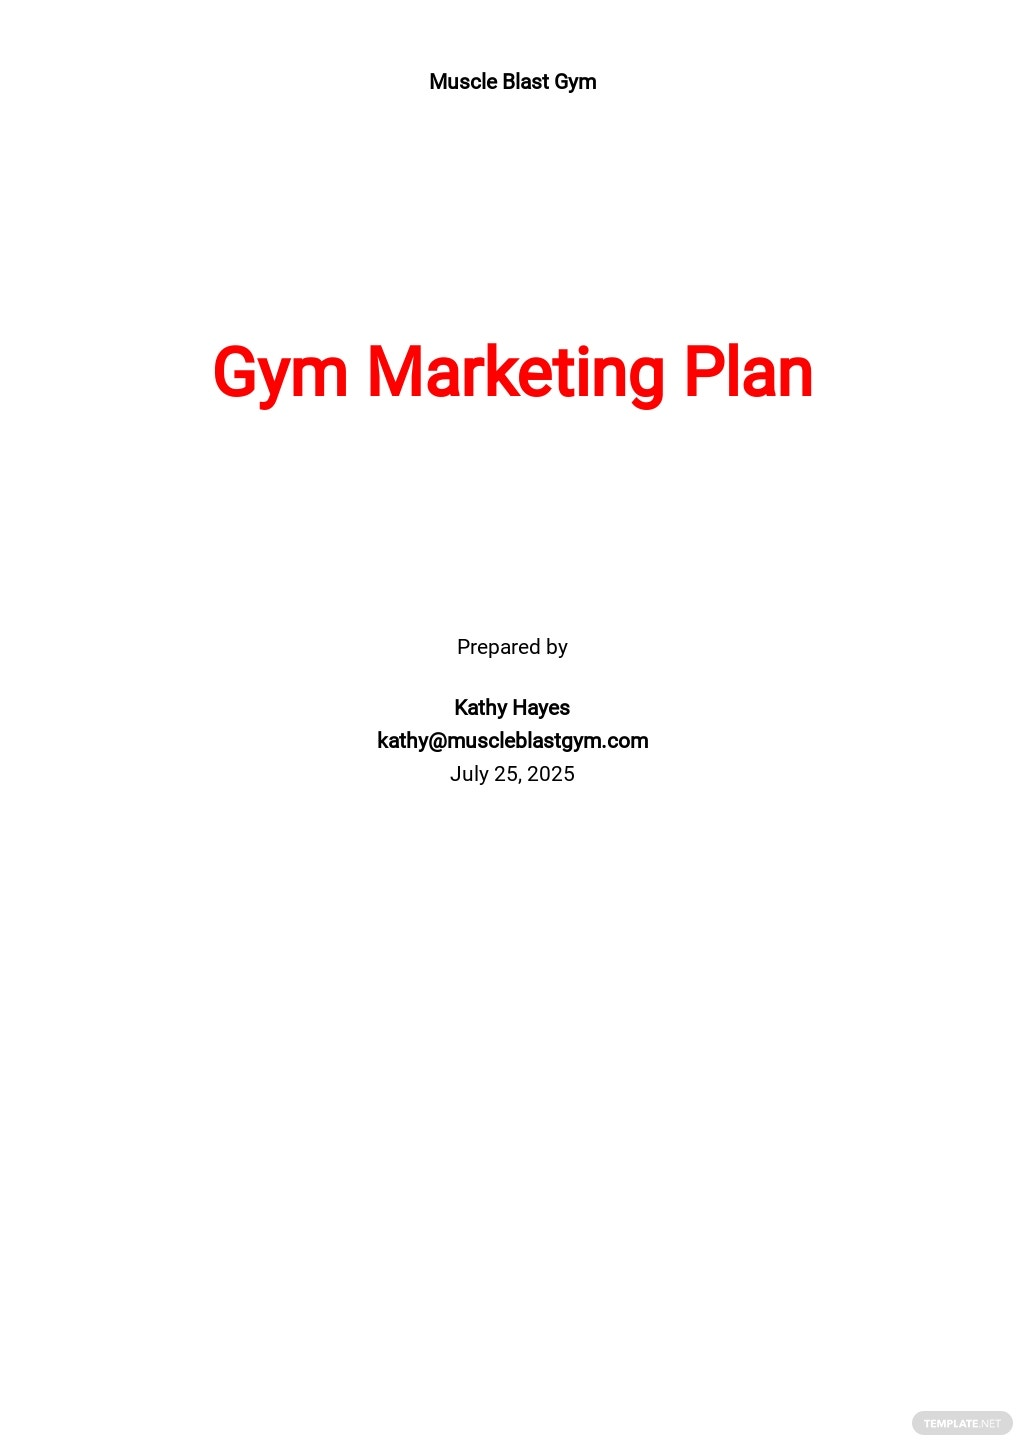 Gym Marketing Plan Template